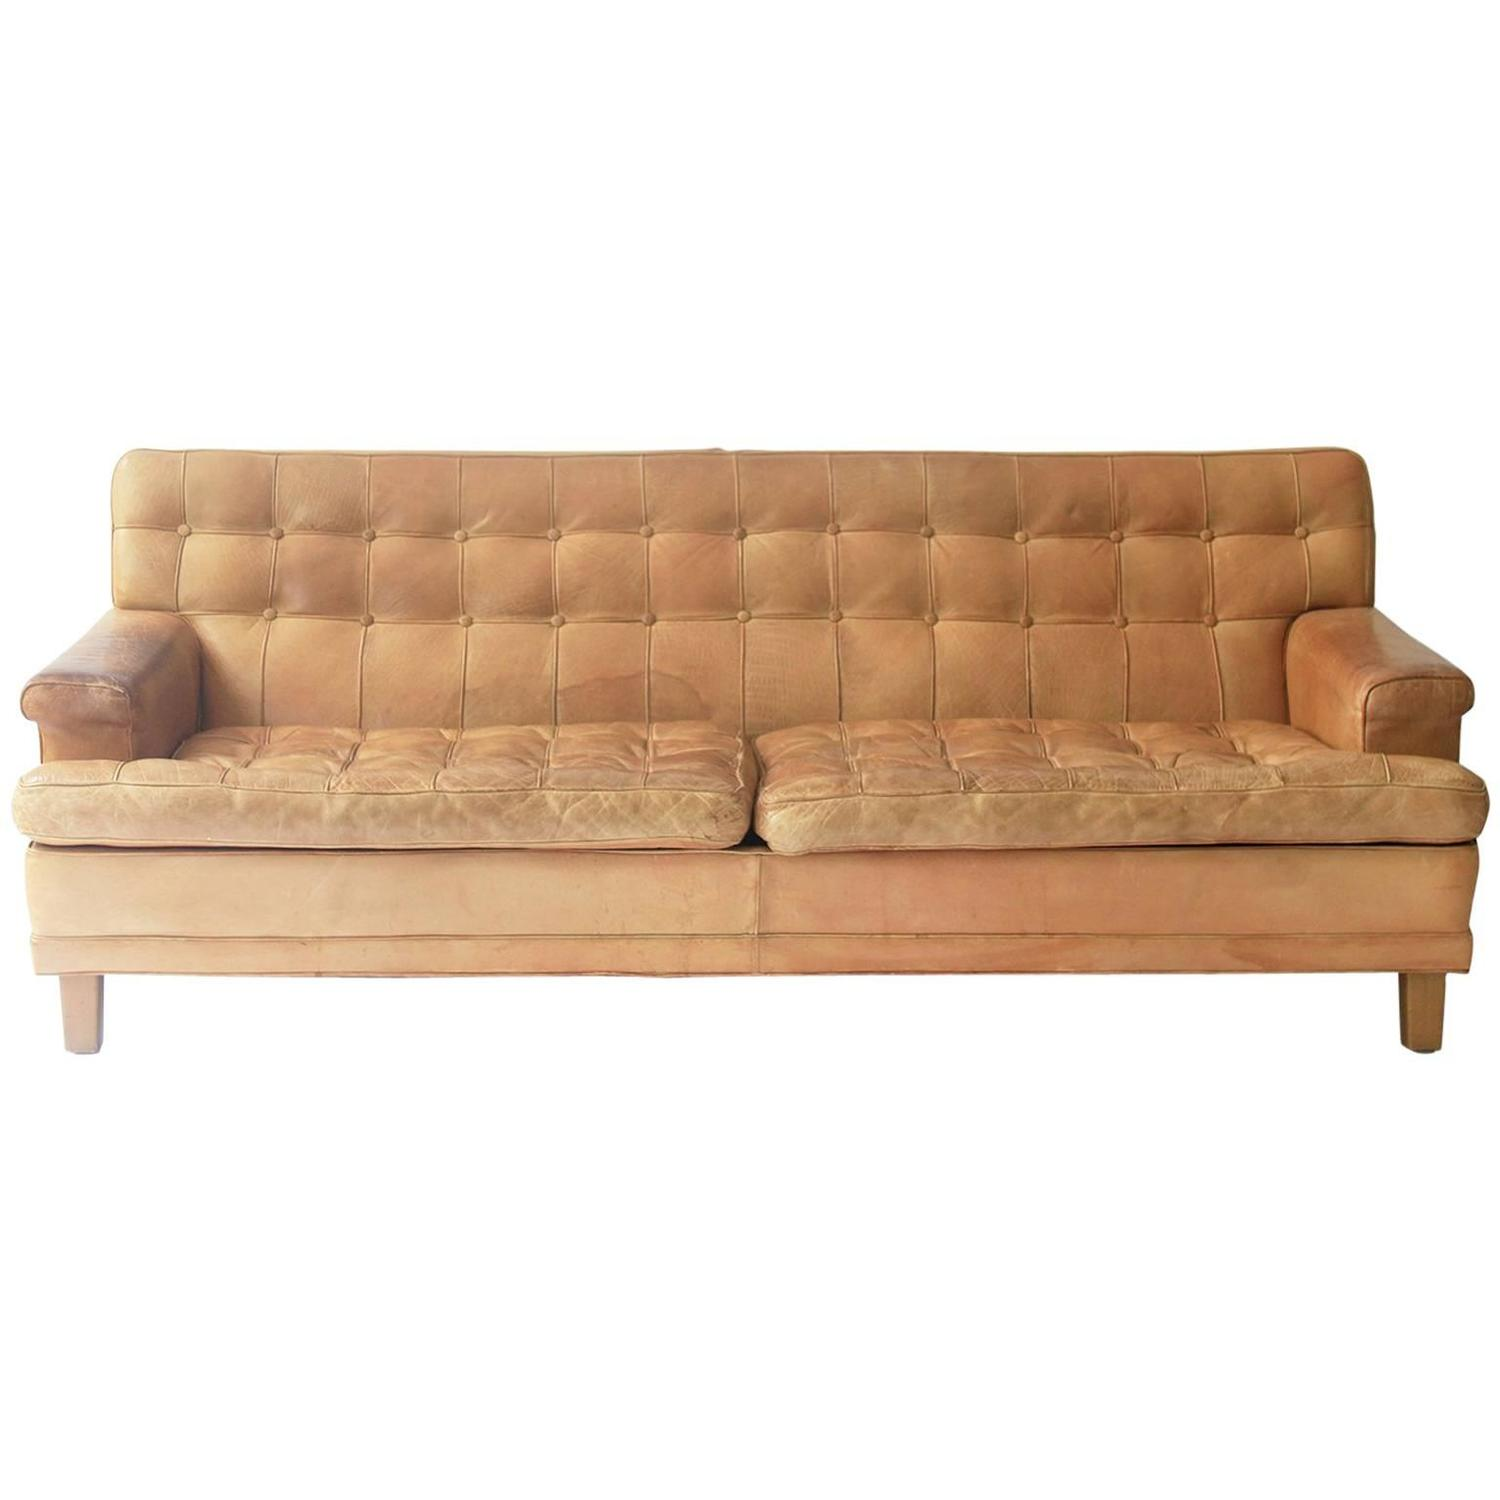 Of four chairs in oak and patinated cognac leather for sale at 1stdibs - Arne Norell Merkur Sofa In Cognac Leather By Norell Ab In Sweden For Sale At 1stdibs